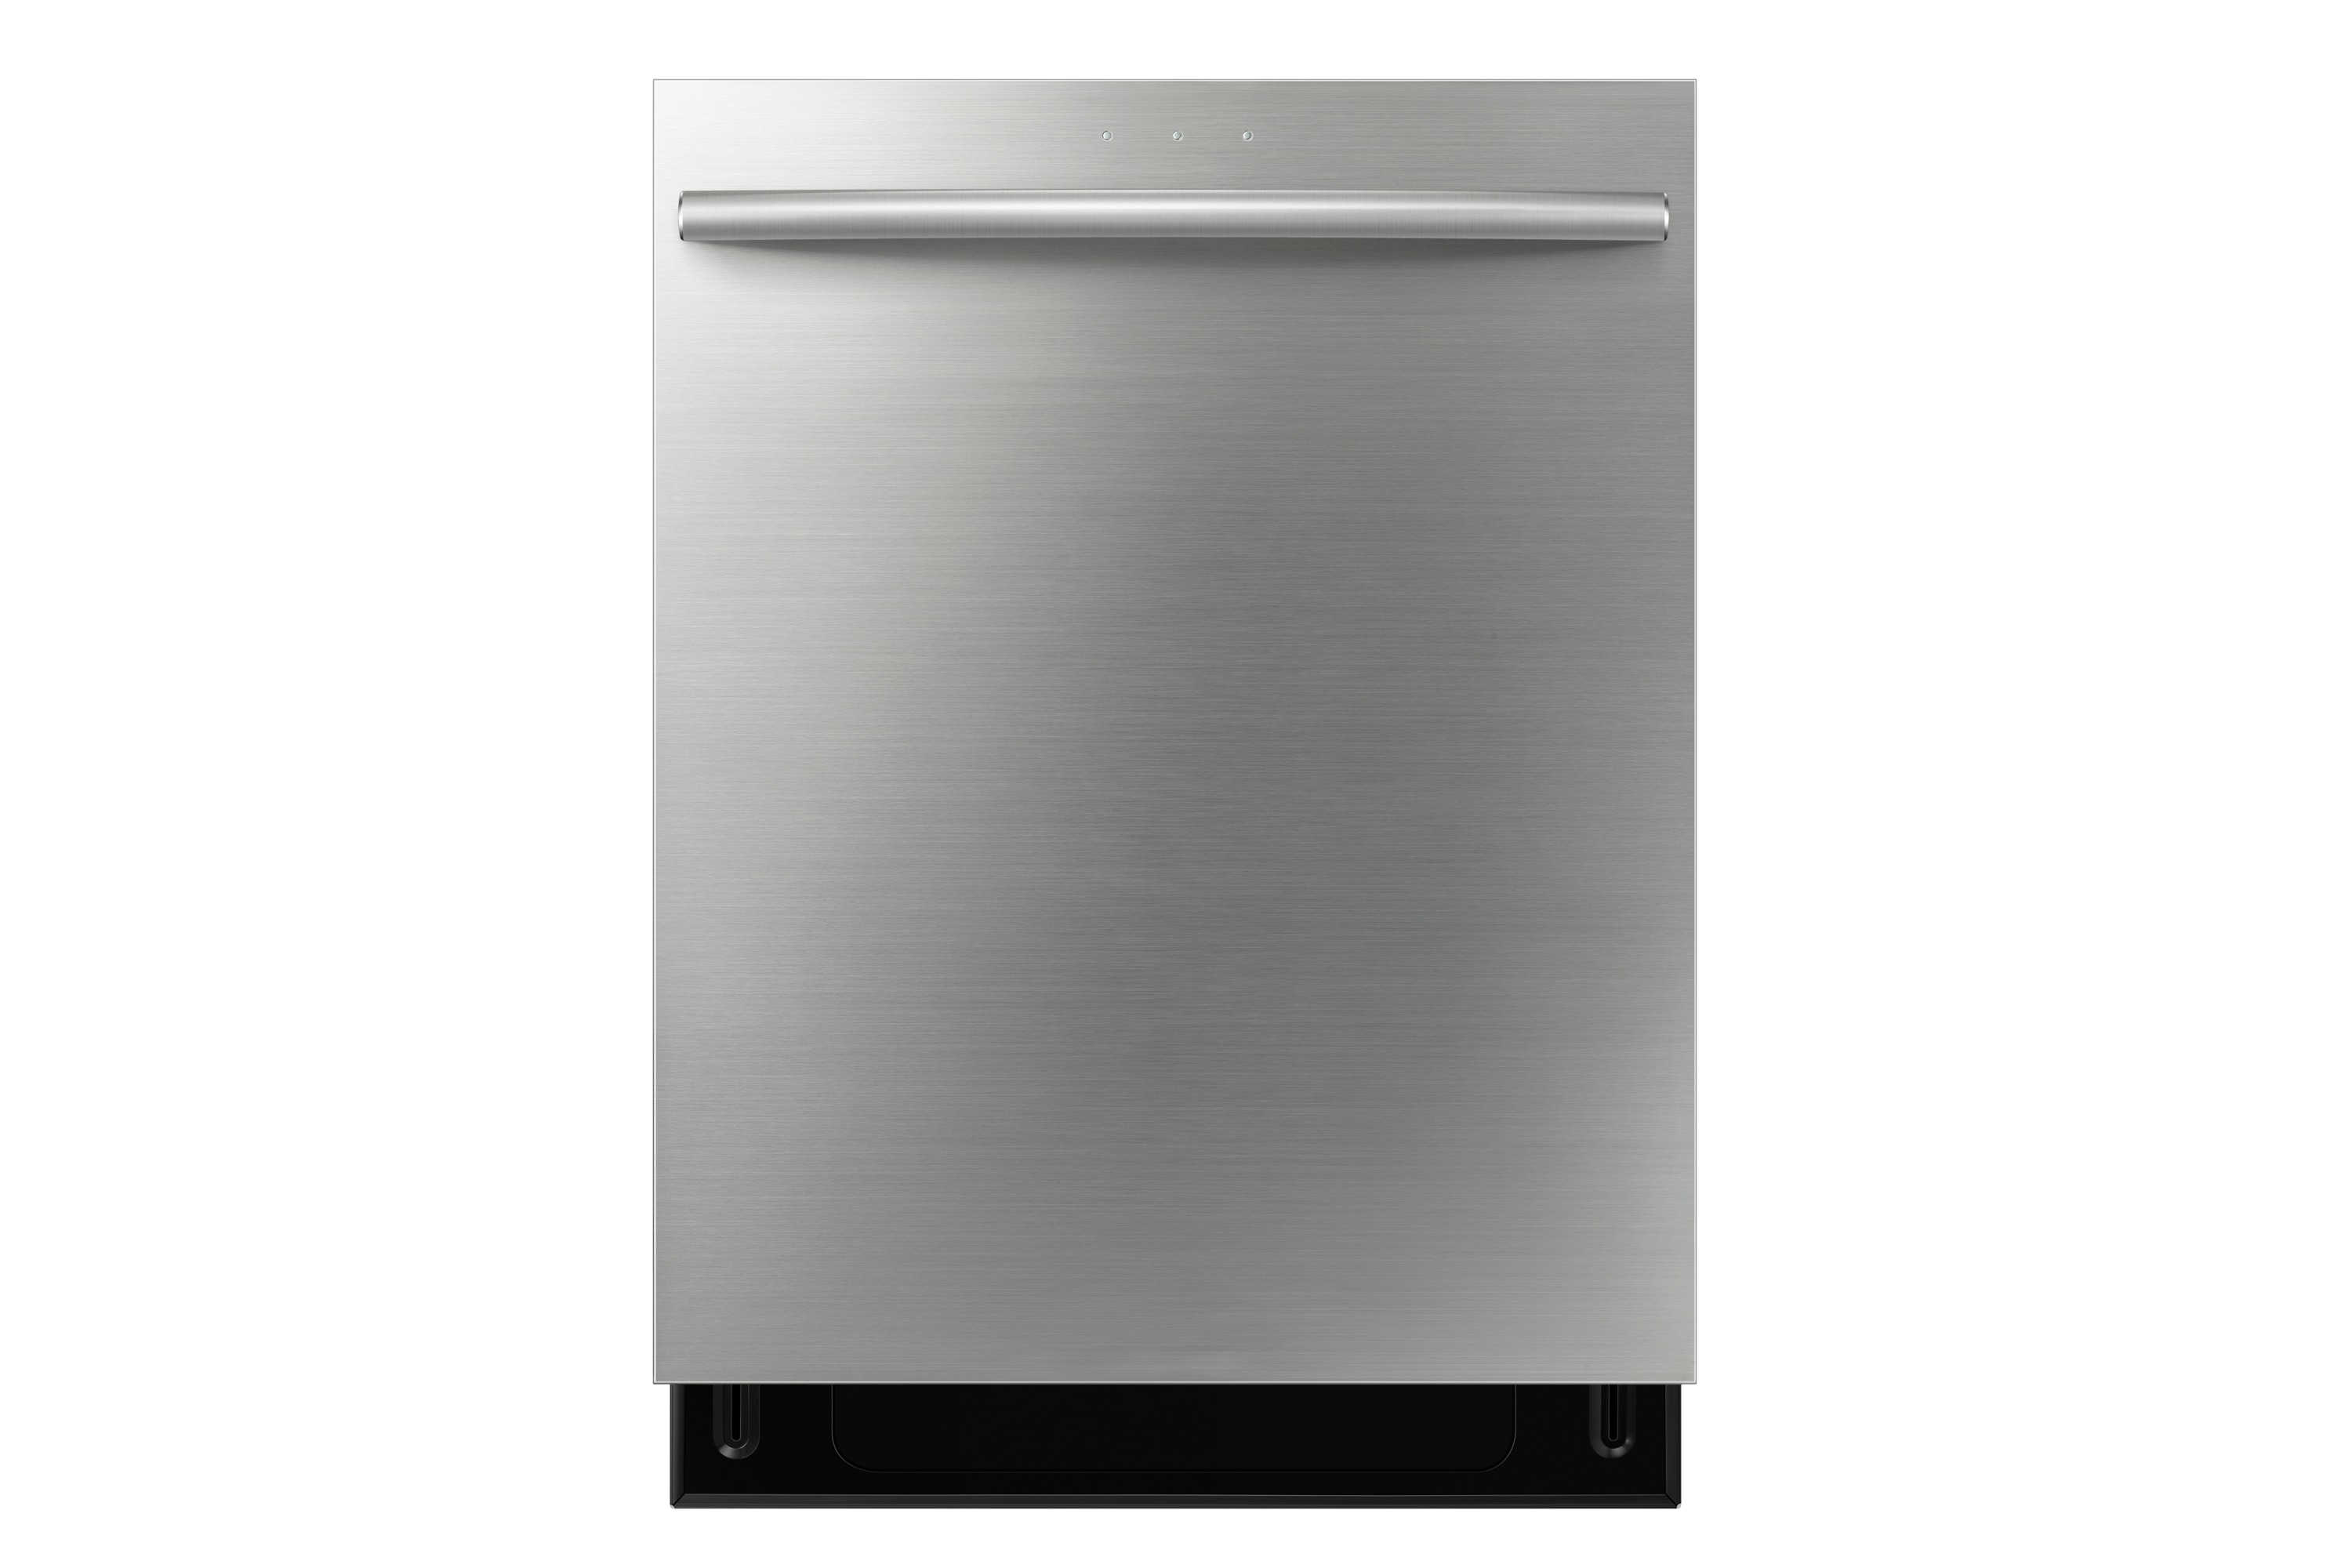 DW-F800A 48 dBA Dishwasher (Stainless Steel)